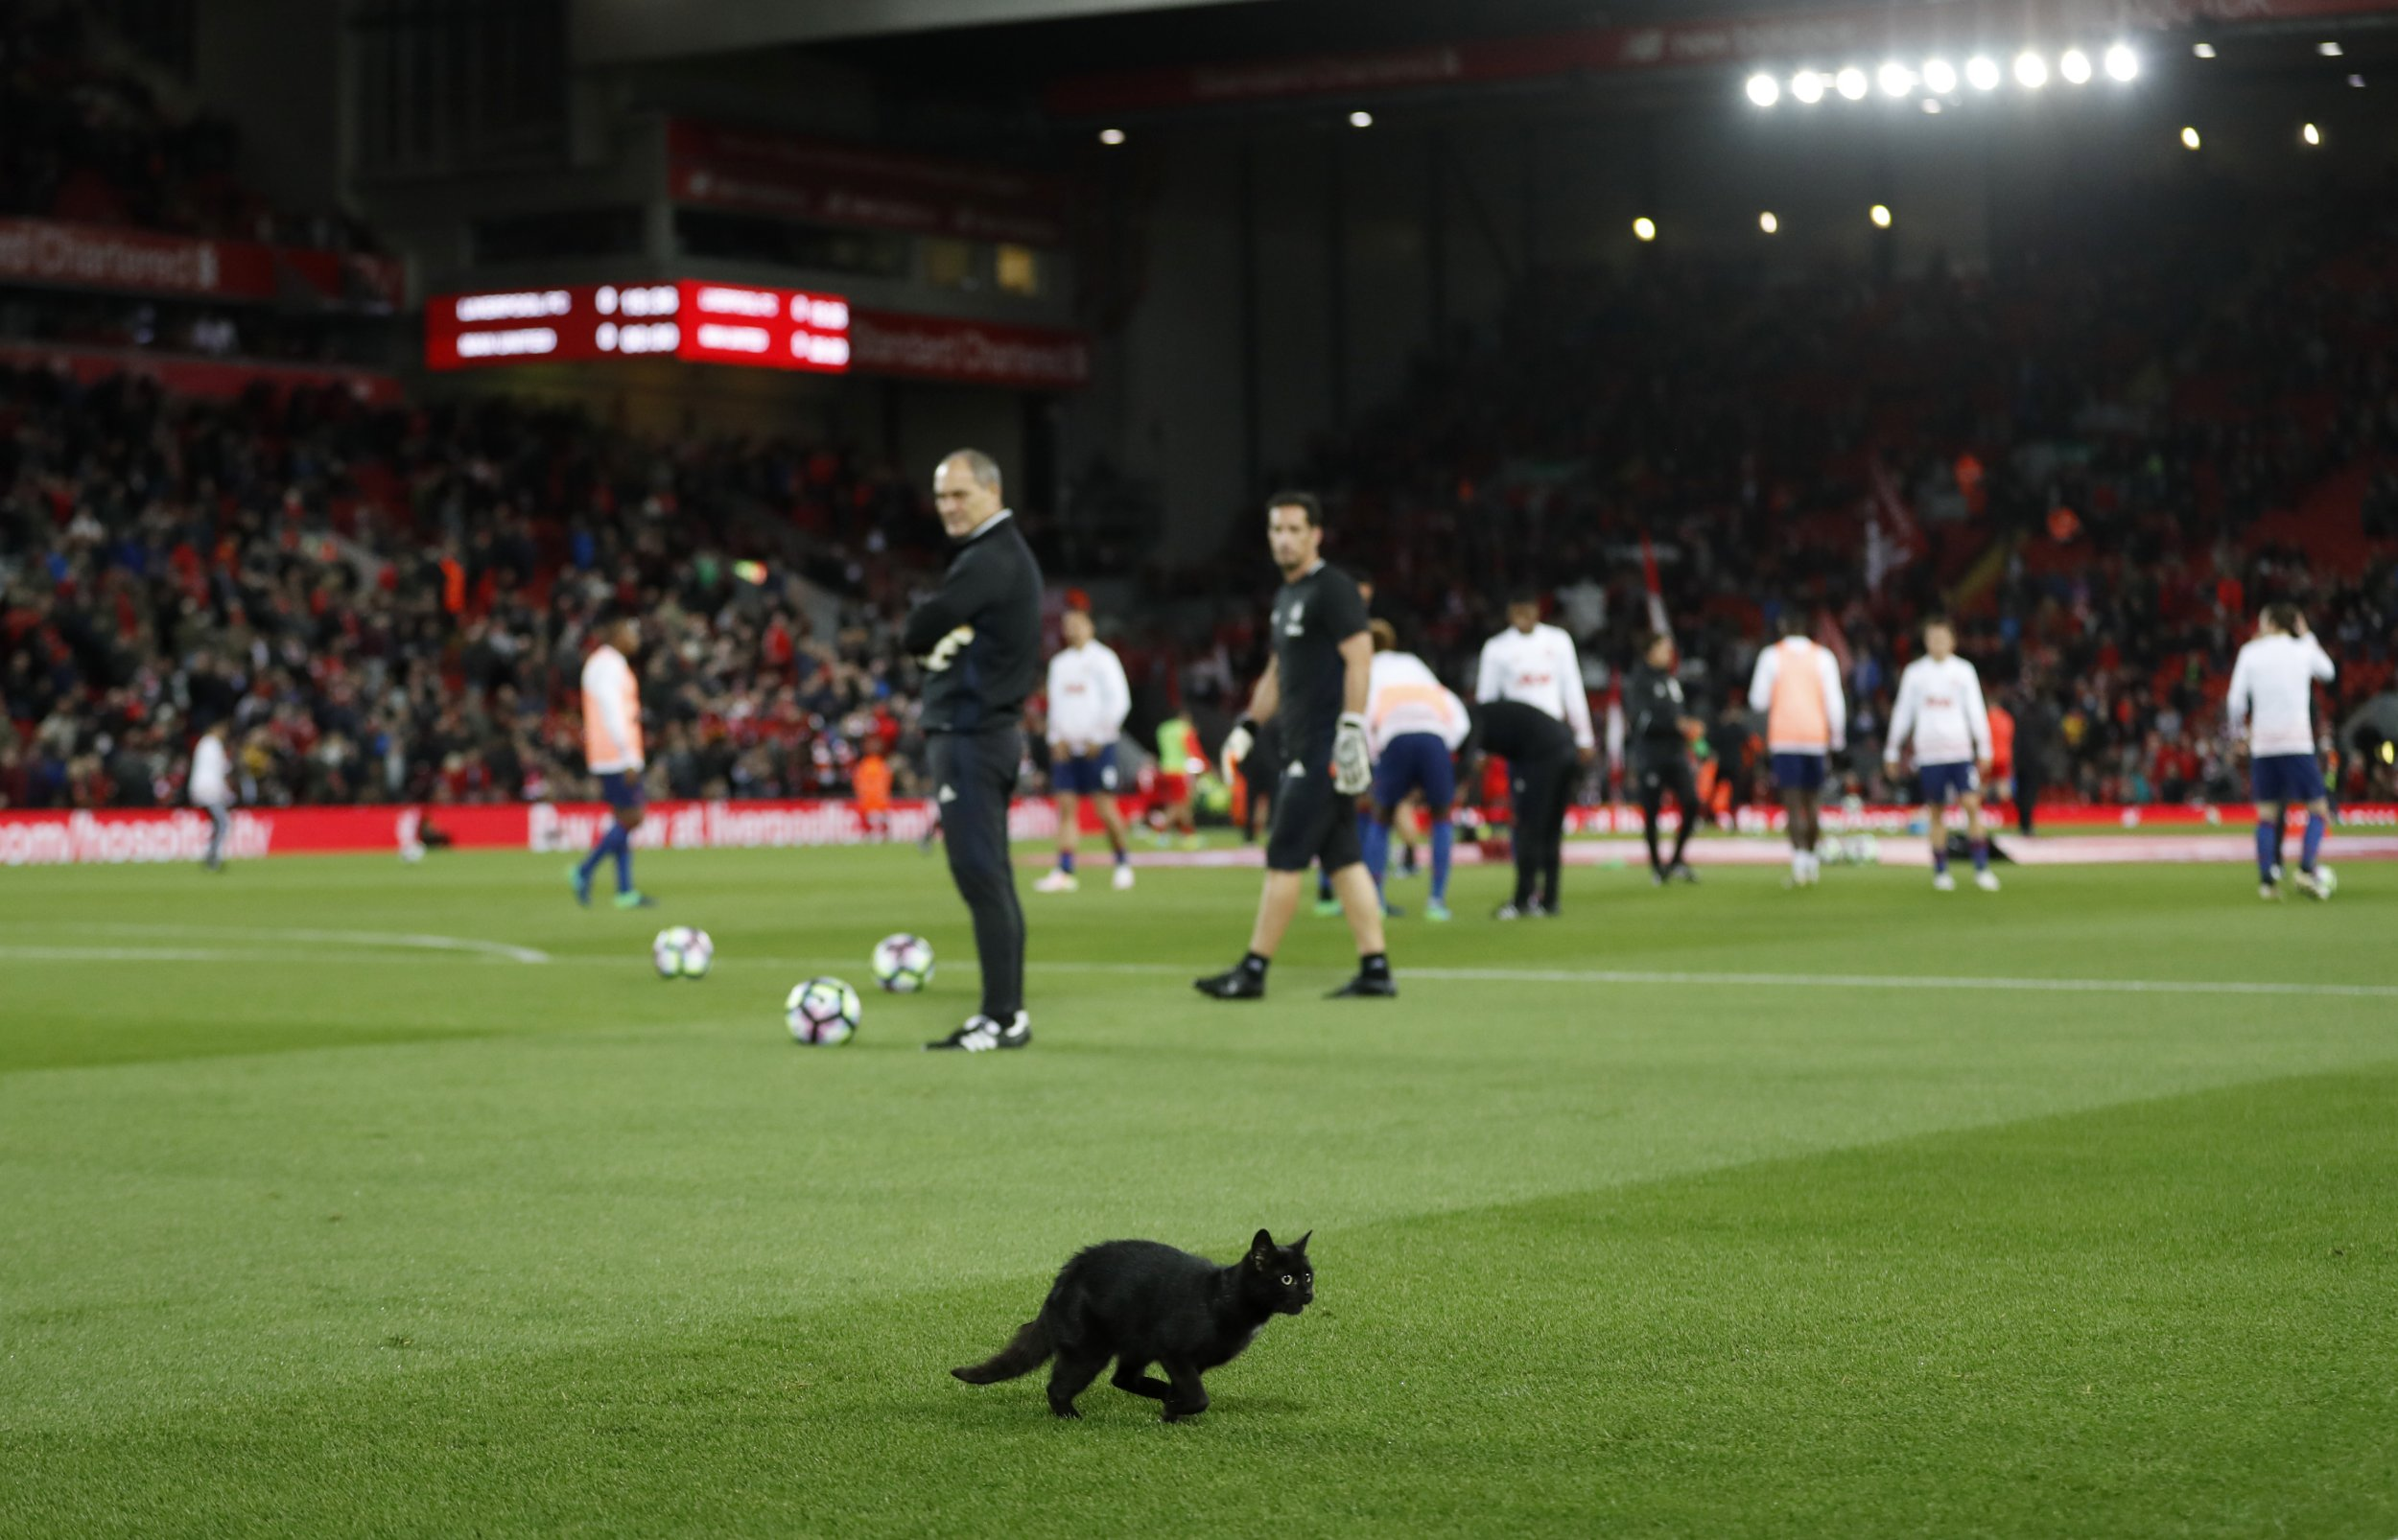 Liverpool v Manchester United: People loving one cat pitch invasion ahead of clash